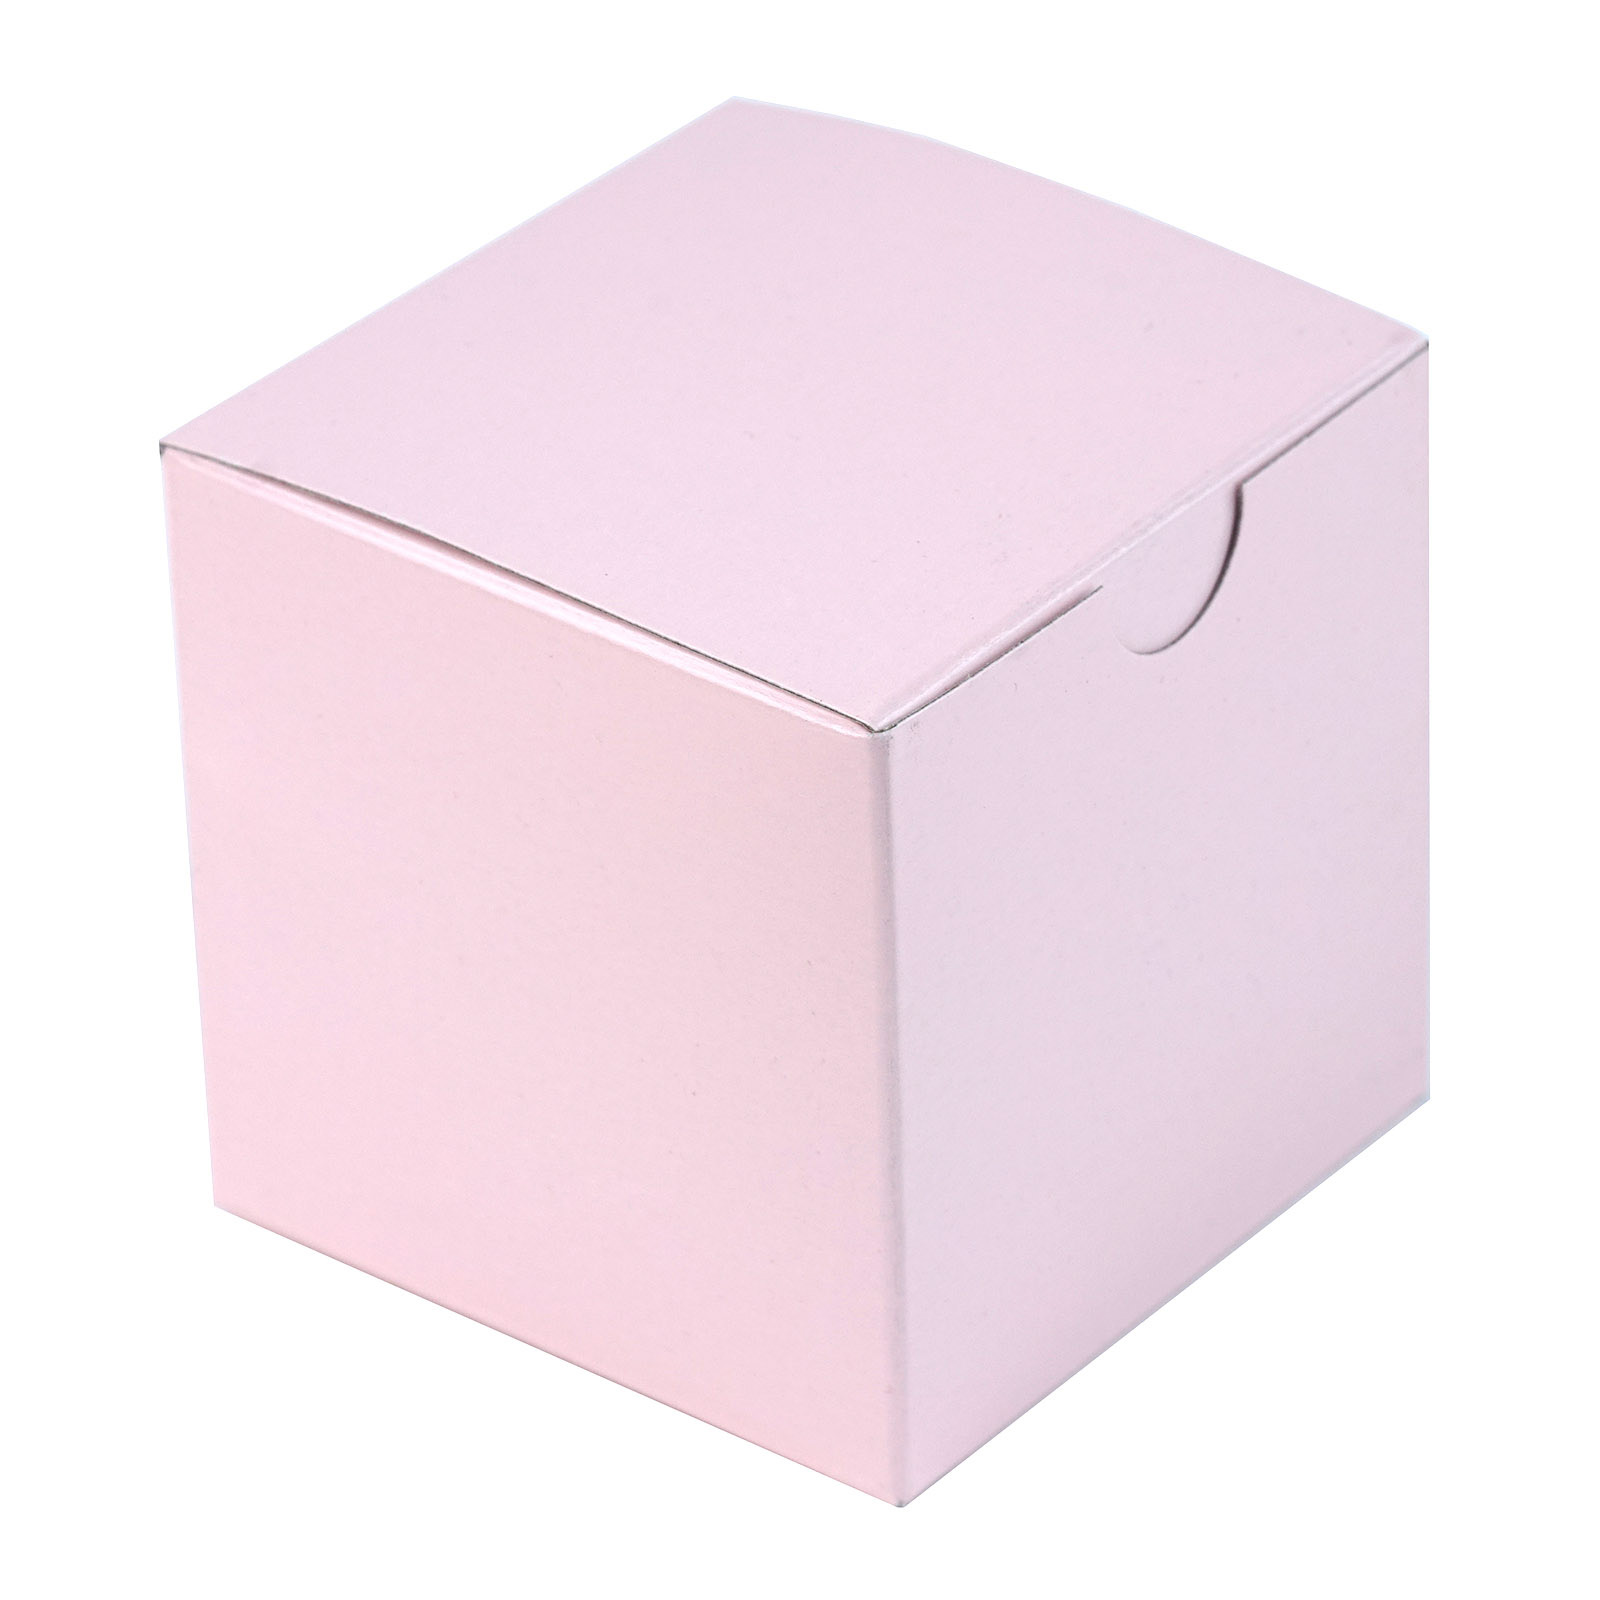 400 pcs 3x3x3 inches Wedding FAVOR GIFT BOXES Party Wholesale FREE ...